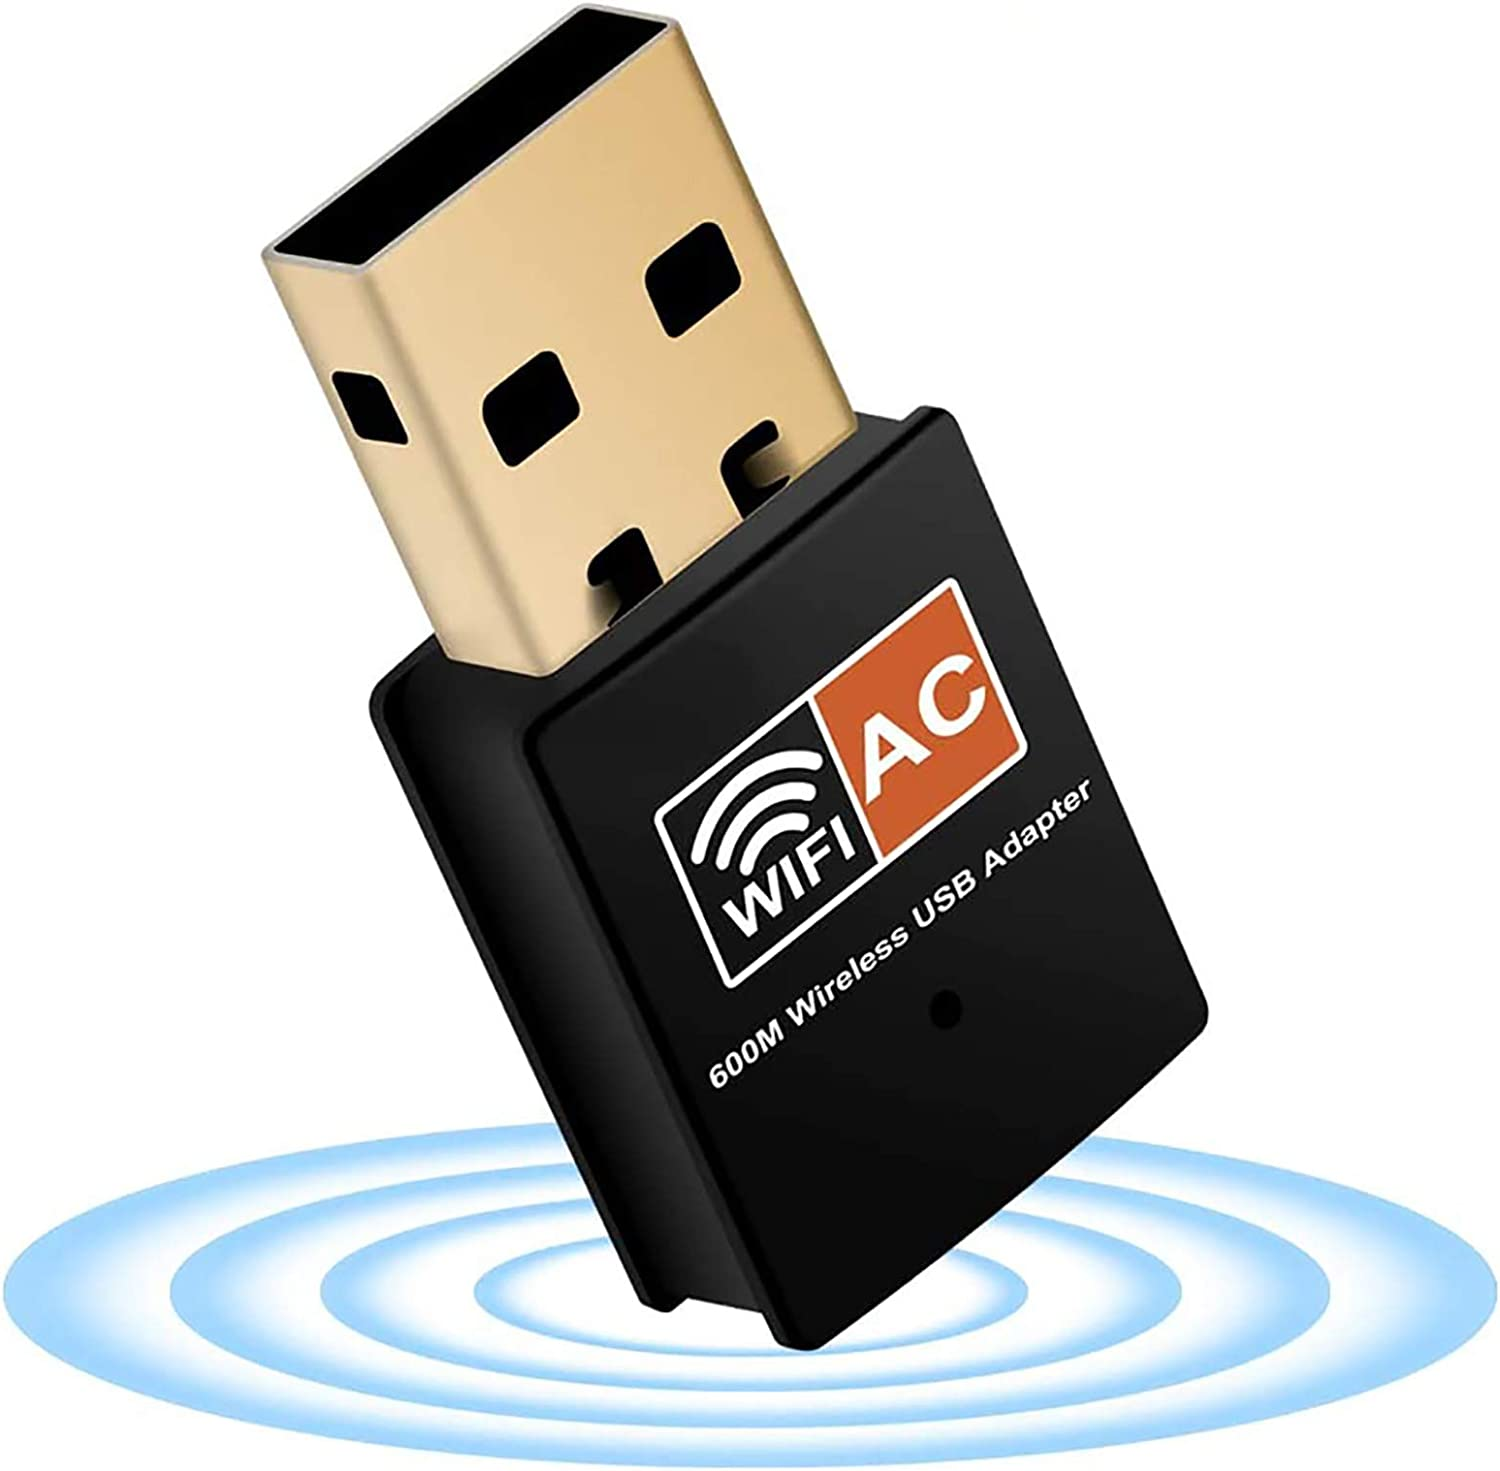 Xvz Usb Wifi Dongle For Pc 600 Mbps Dual Band 2 4 Ghz Computers Accessories